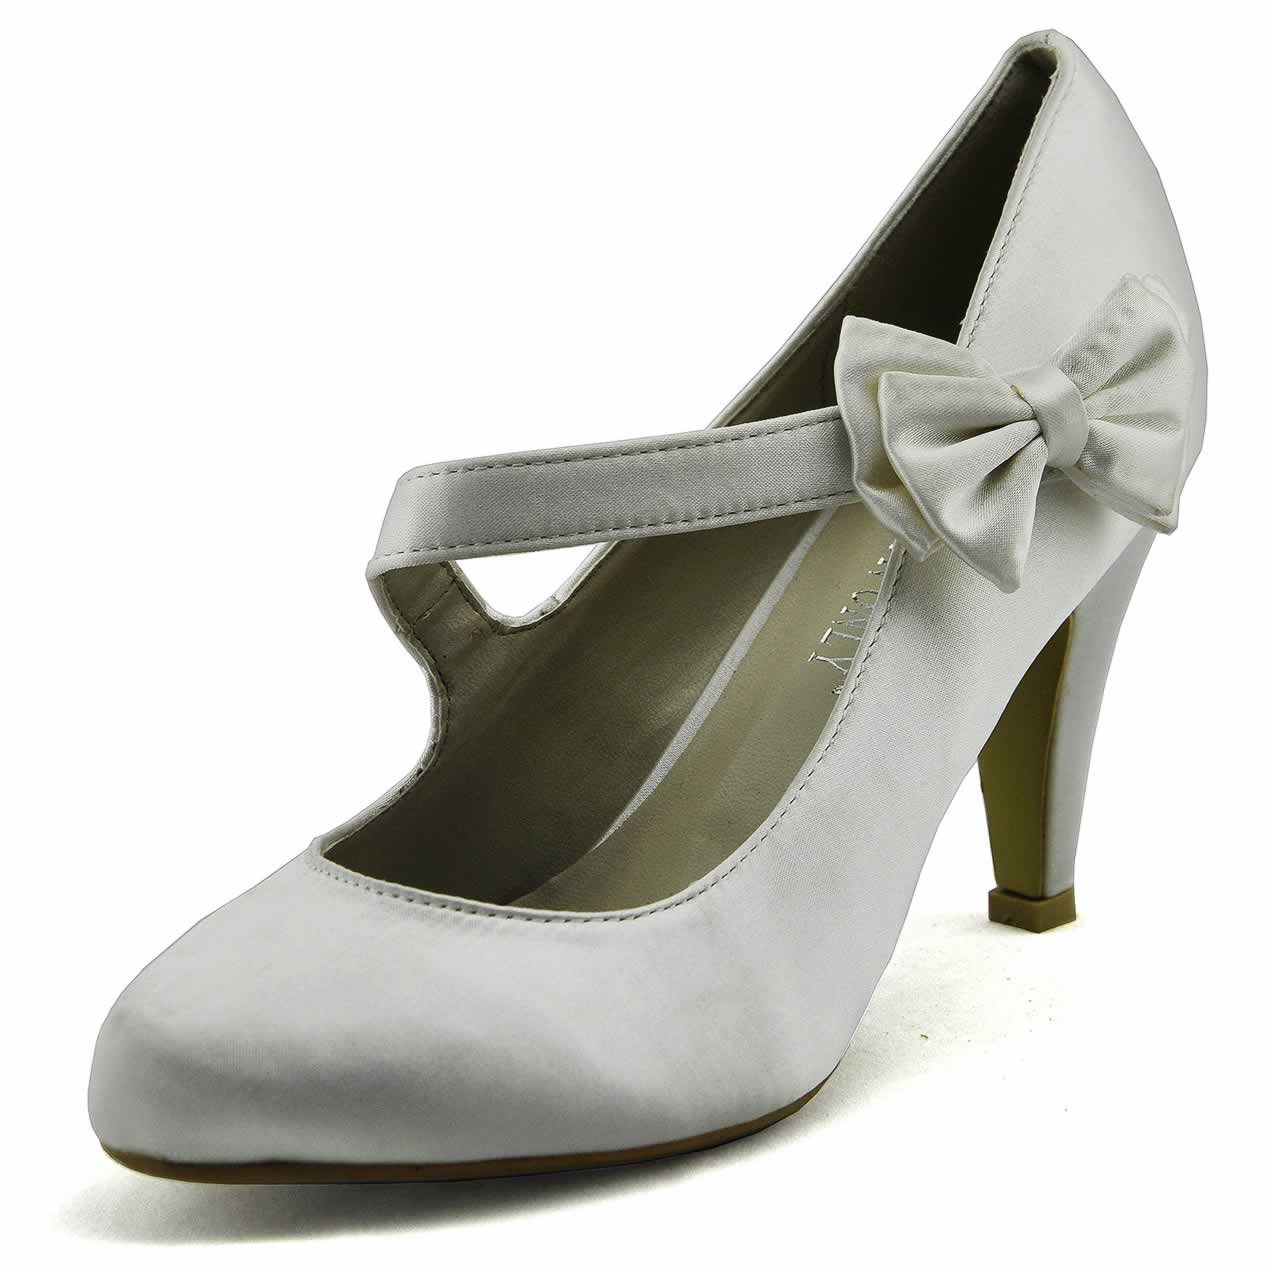 shoes lss00134 white satin court shoes